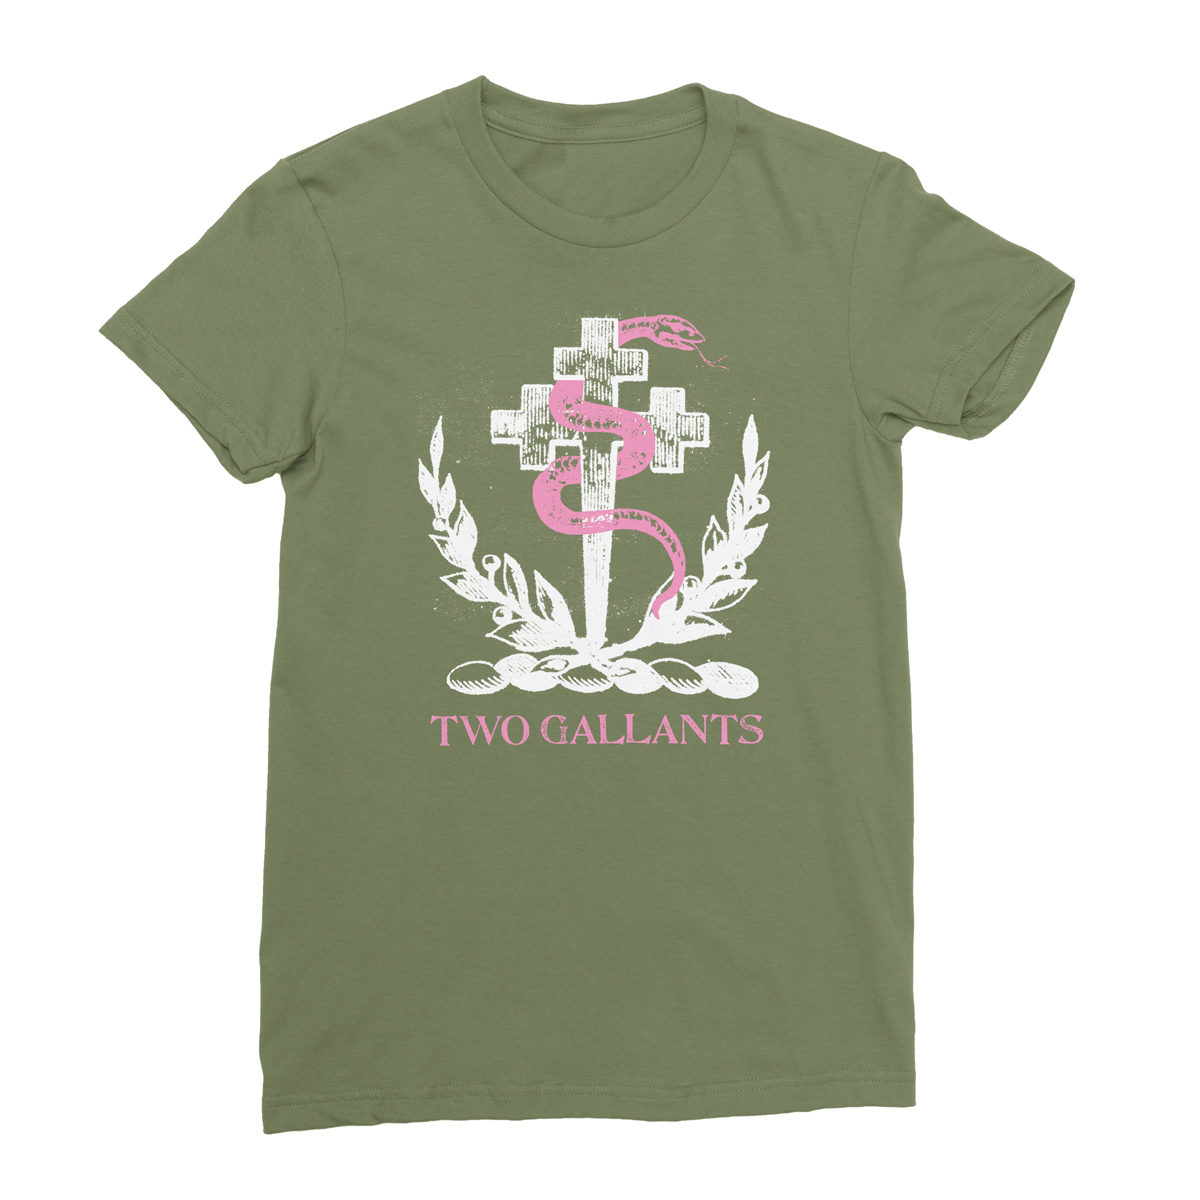 Crest Tee - Army Green - Two Gallants